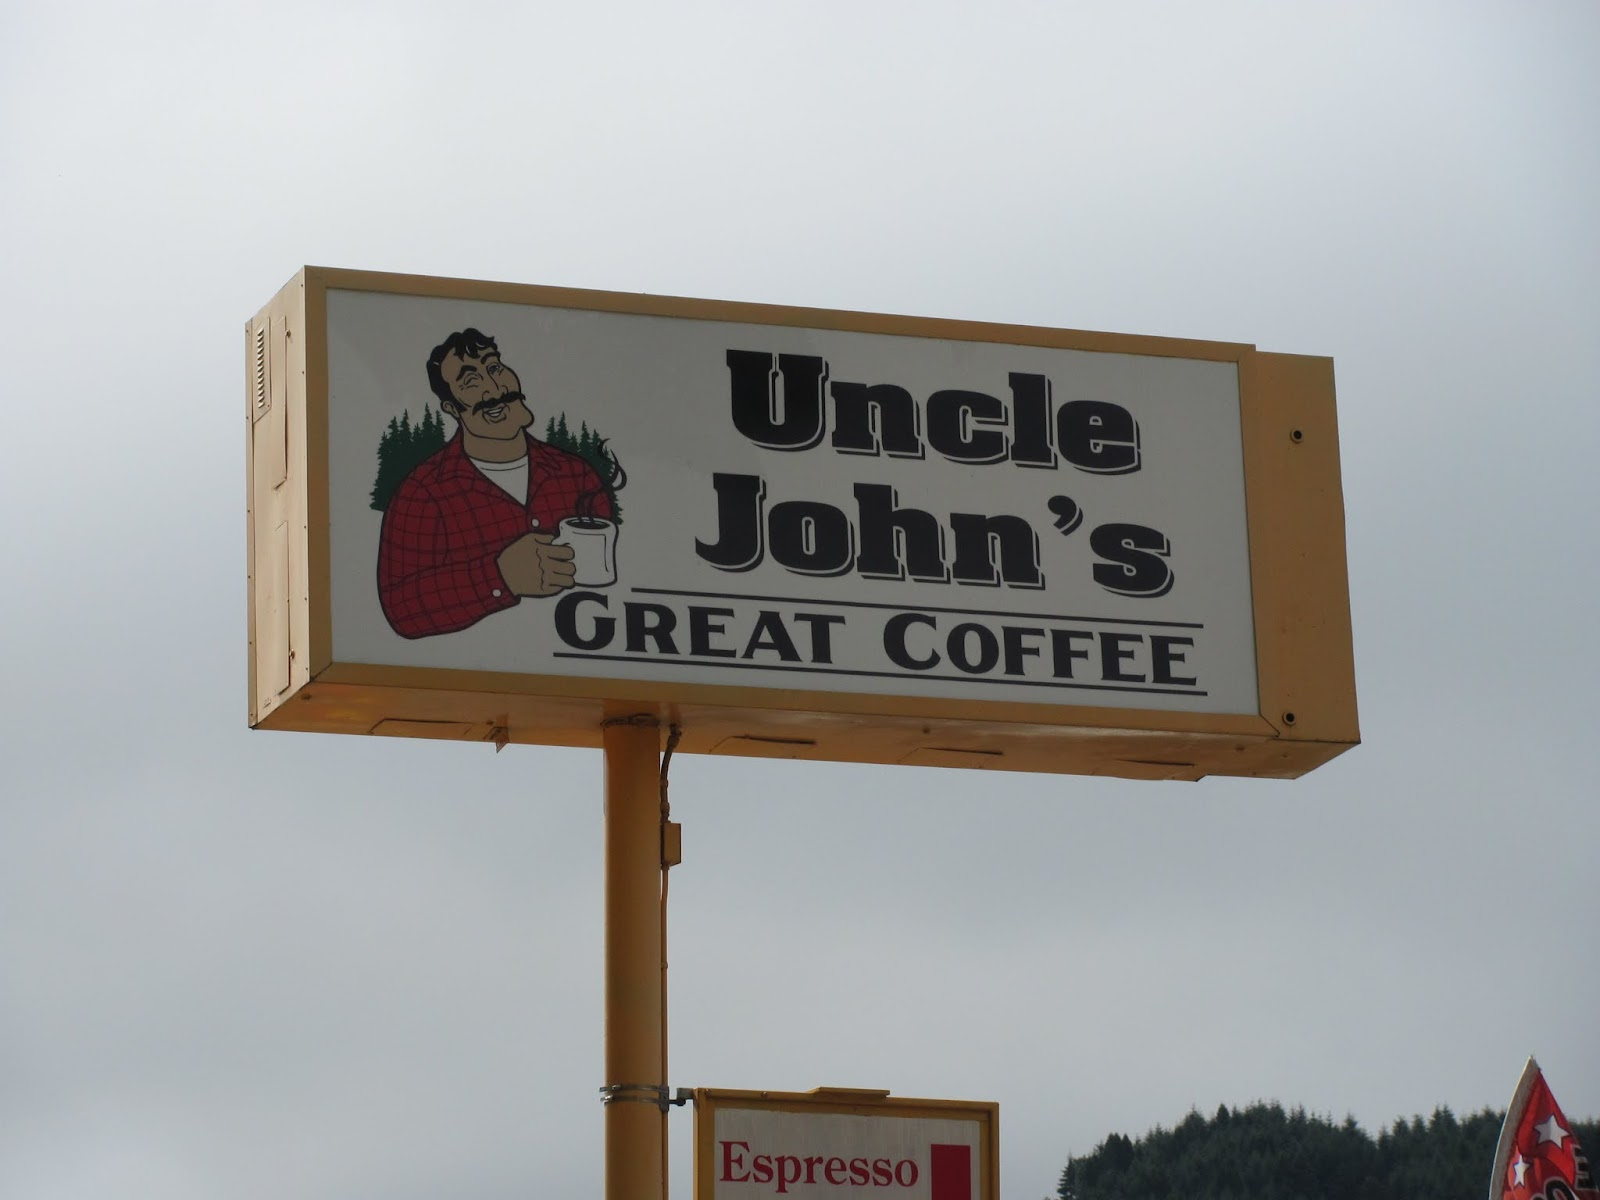 Stopping for coffee on our way out of town in Drain, Oregon